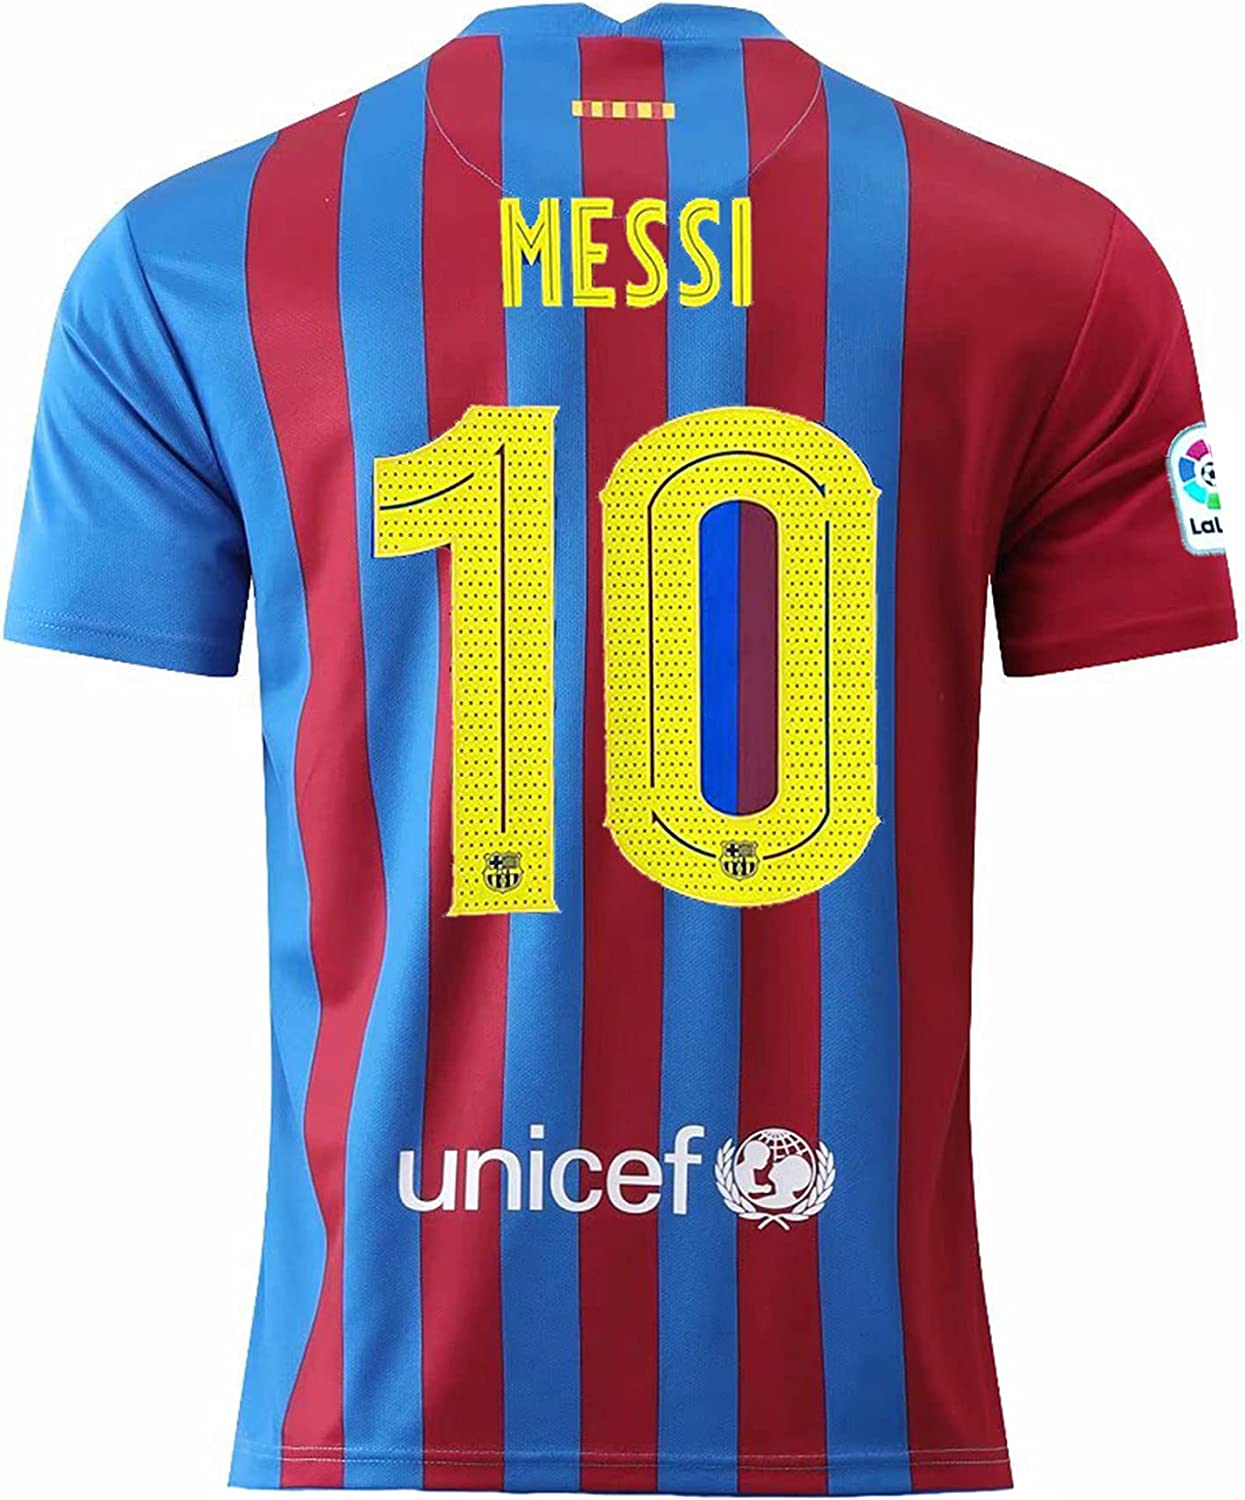 MATICSHI 2021-2022 New Season Messi #10 Mens Barcelona Home Soccer T-Shirts Jersey Color Red/Blue